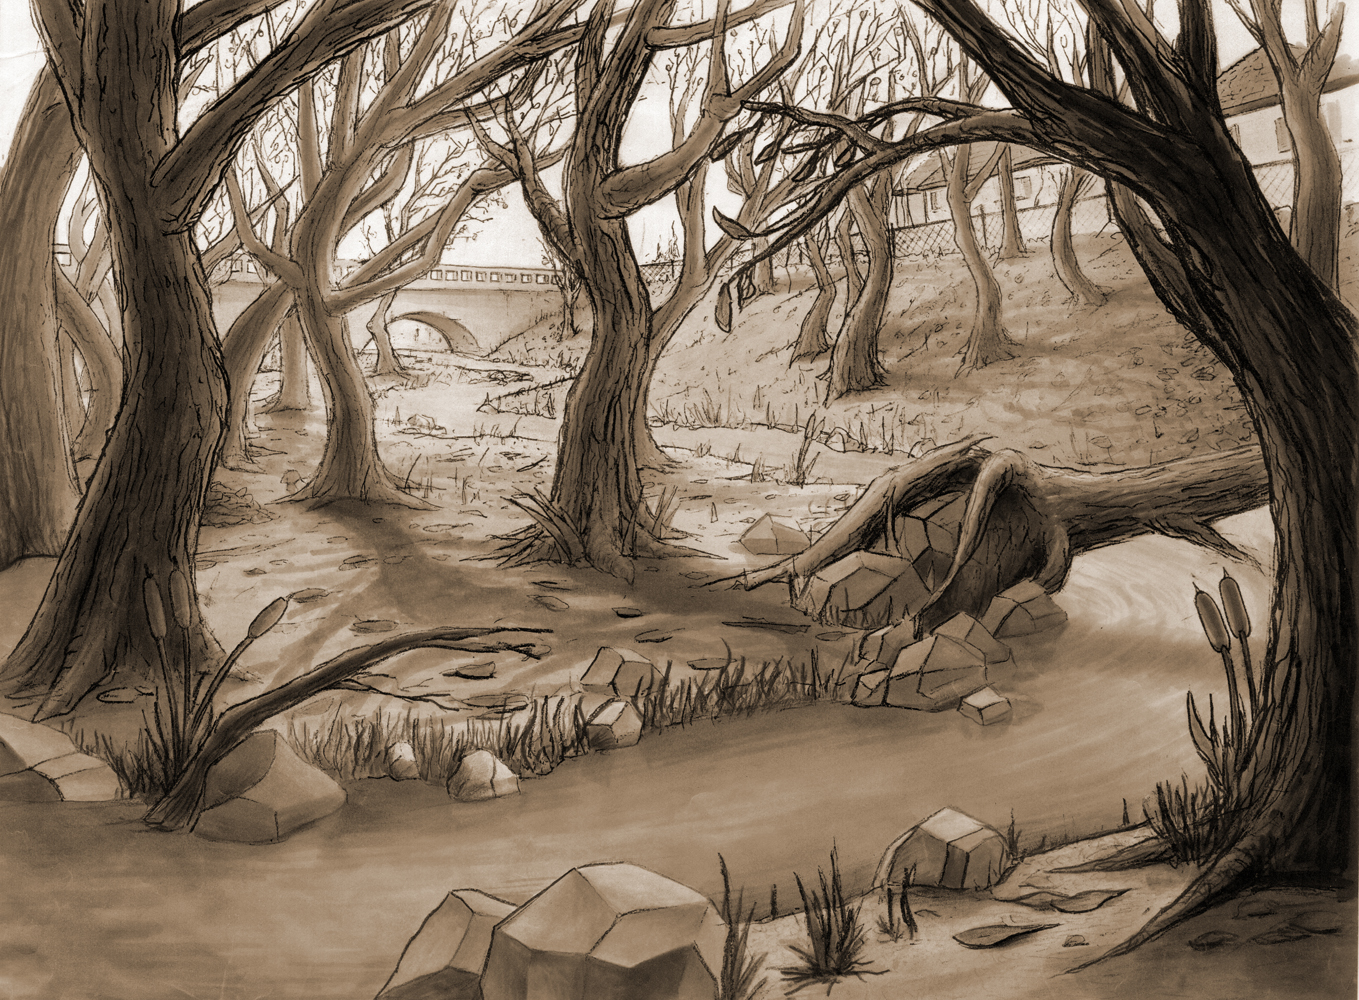 Pencil Sketch Background Photos Backgrounds Pencil Drawings, - Drawings Art  Gallery